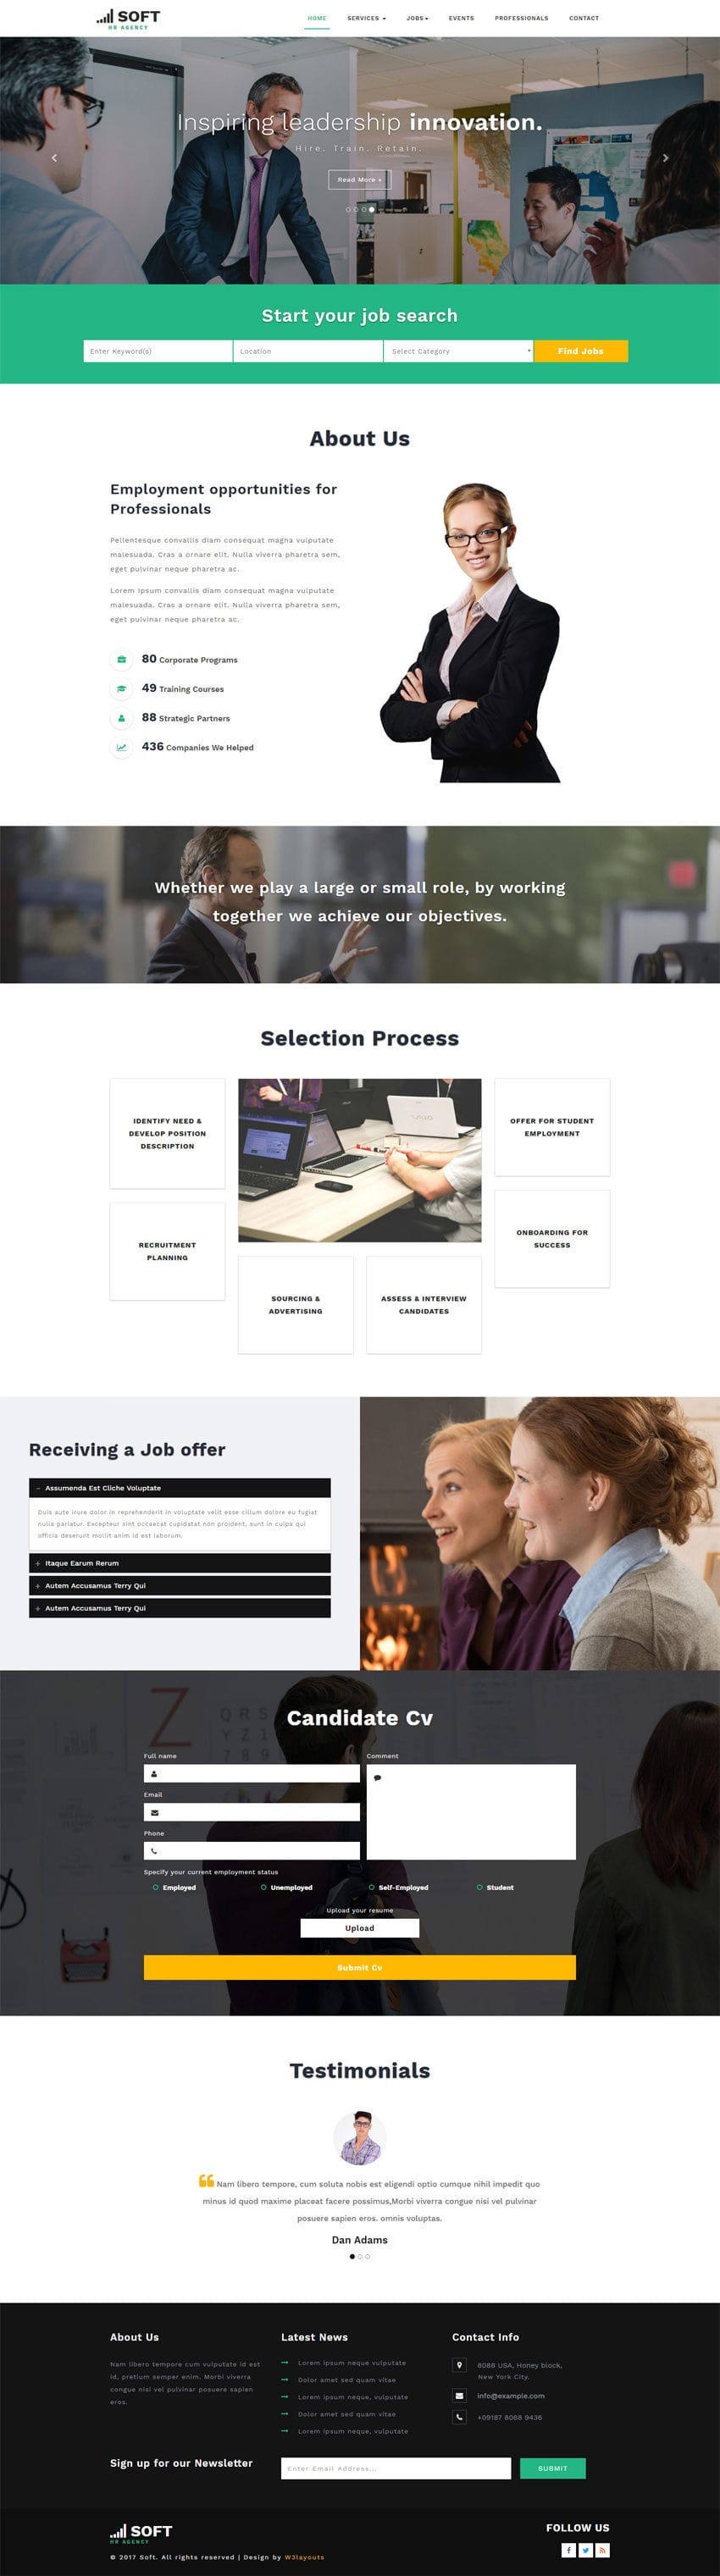 Human Resource Management is a  Bootstrap Responsive Website Template. This free HTML web template is built for Recruiters and Human Resources agencies.